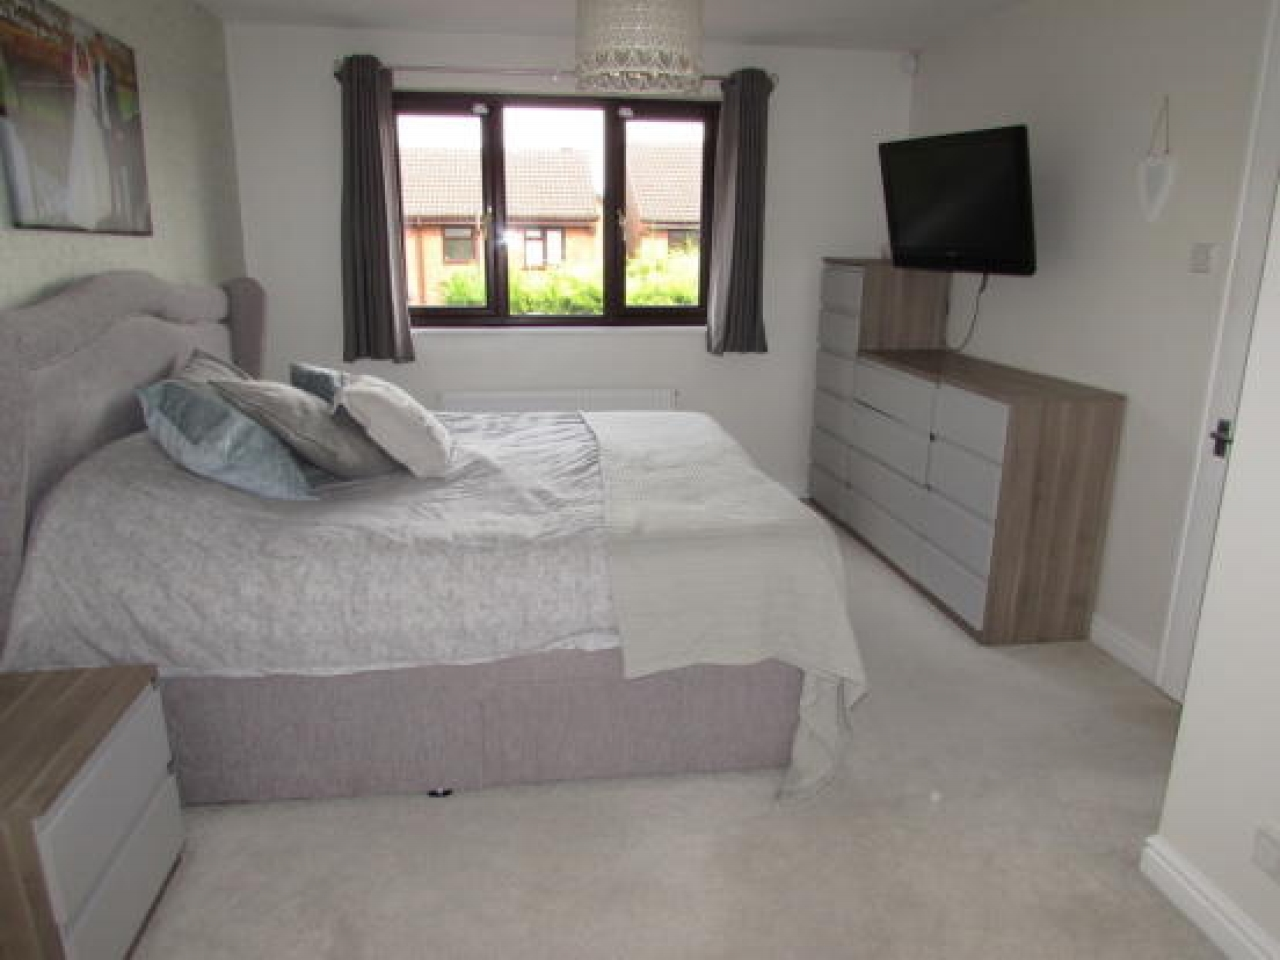 4 bedroom detached house SSTC in Solihull - photograph 9.